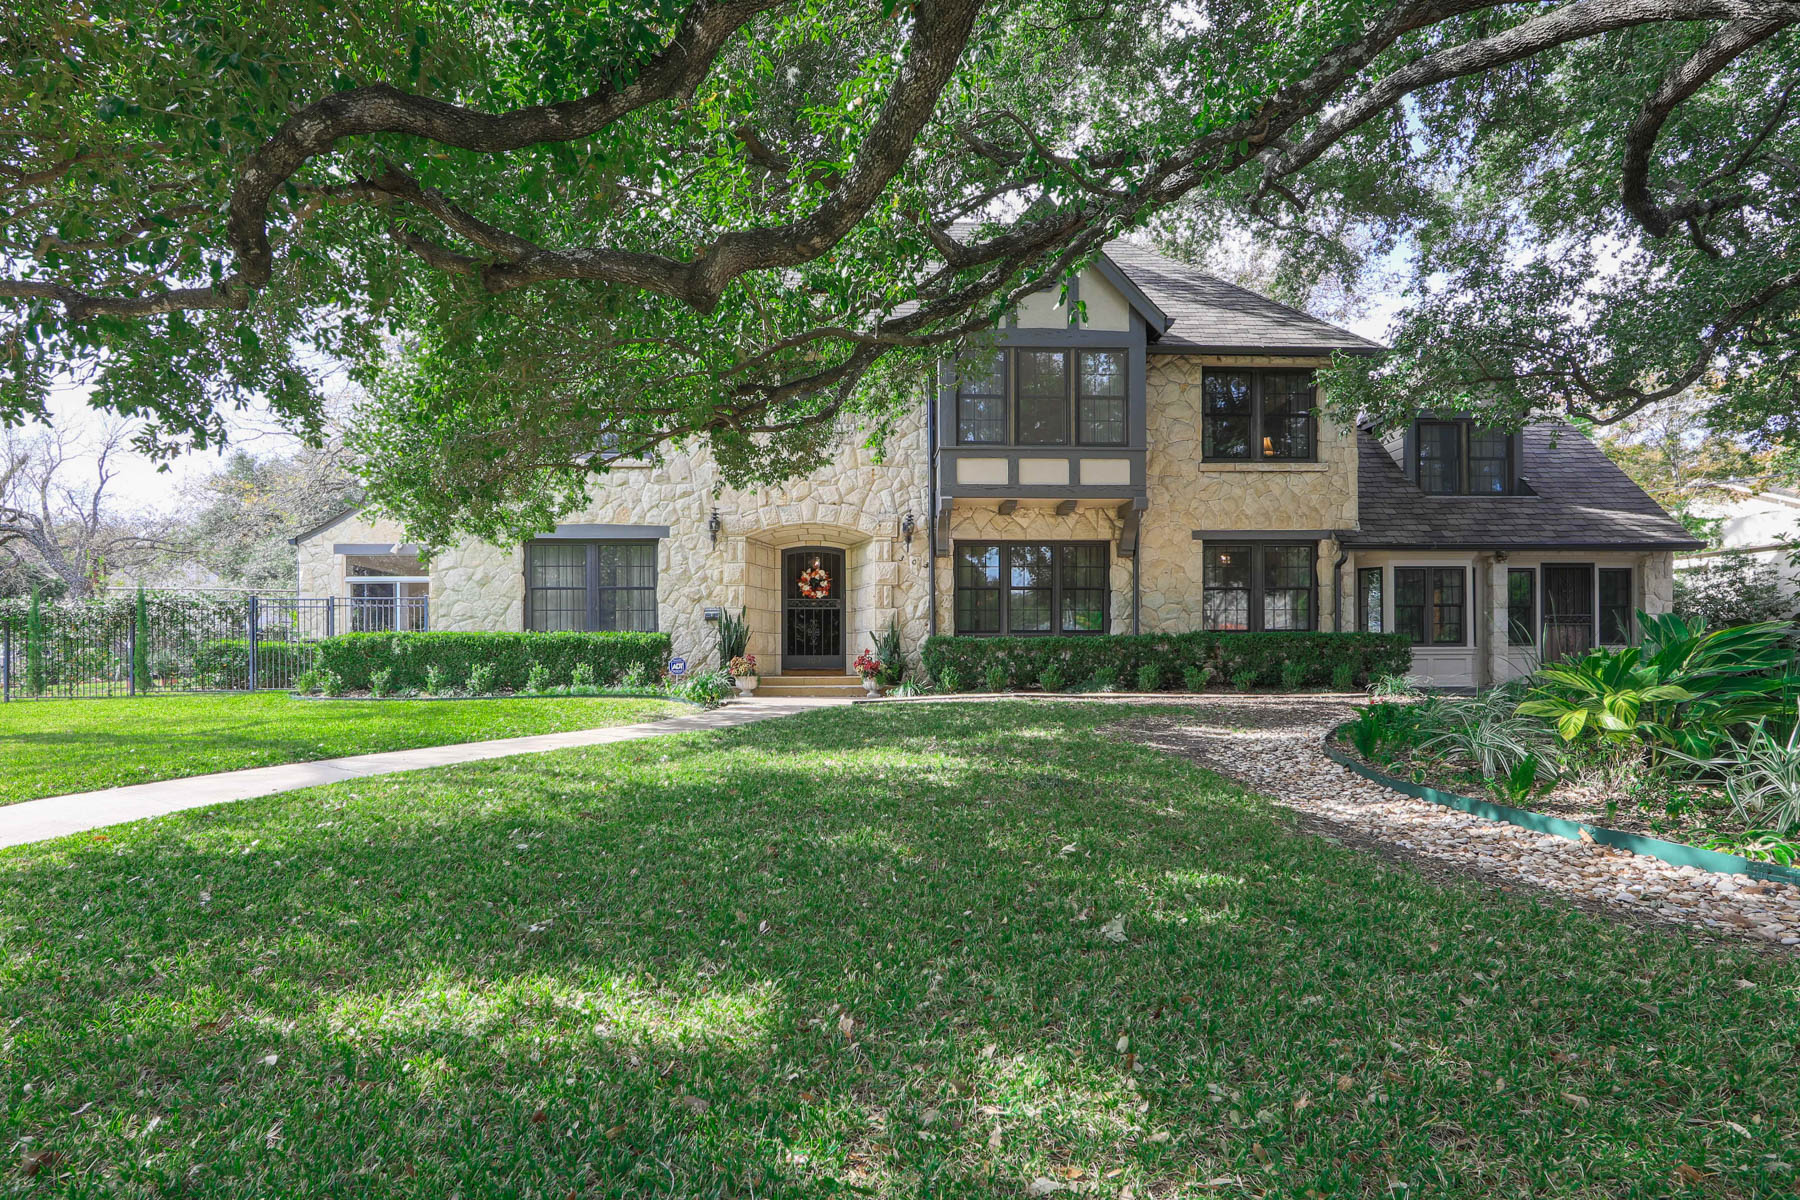 Single Family Home for Sale at Stunning Olmos Park Tudor 303 W El Prado Dr San Antonio, Texas 78212 United States